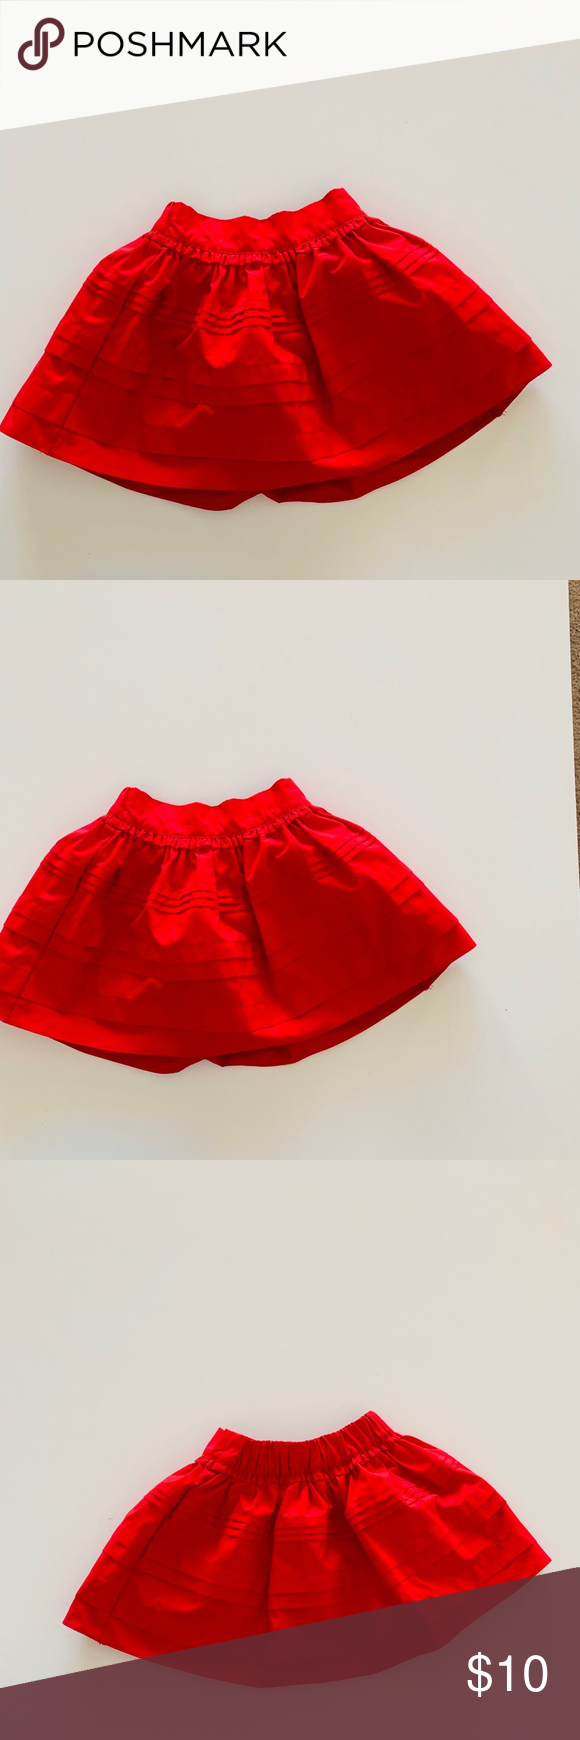 Sz Photo Oshkosh B Gosh Girls Red Skirt Sz 4t Oshkosh B Gosh Size 4t